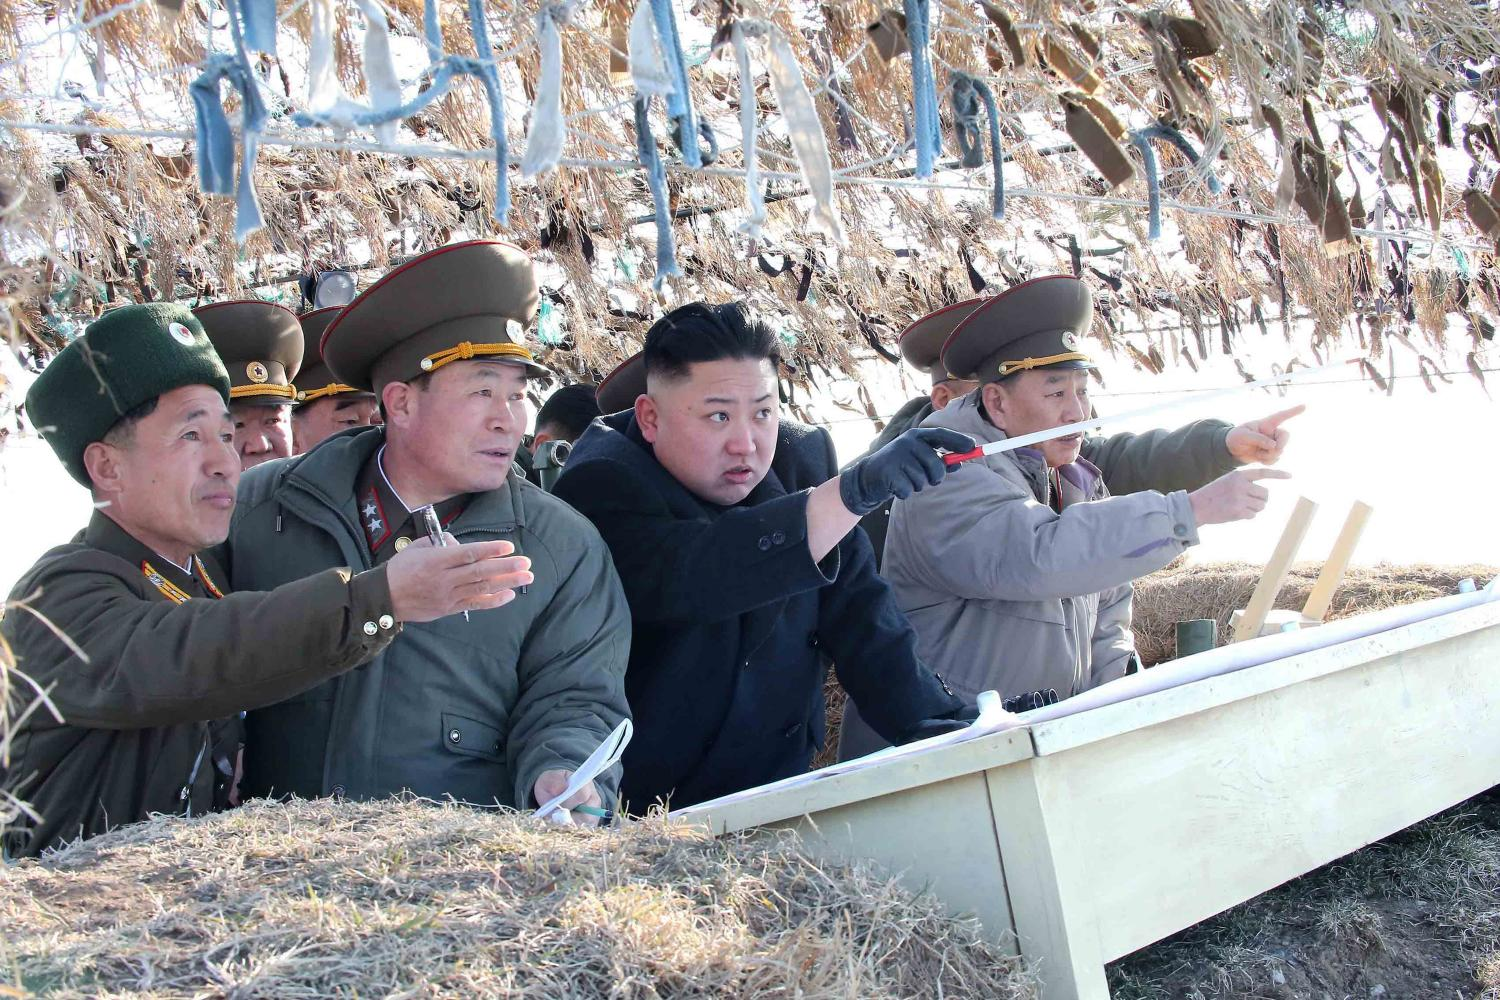 A+photo+released+by+KCNA+news+agency+on+March+12%2C+2013%2C+shows+North+Korea+leader+Kim+Jong+Un+visiting+the+Wolnae-do+Defence+Detachment+on+the+western+front+line.+%28KCNA%2FXinhua%2FZuma+Press%2FMCT%29